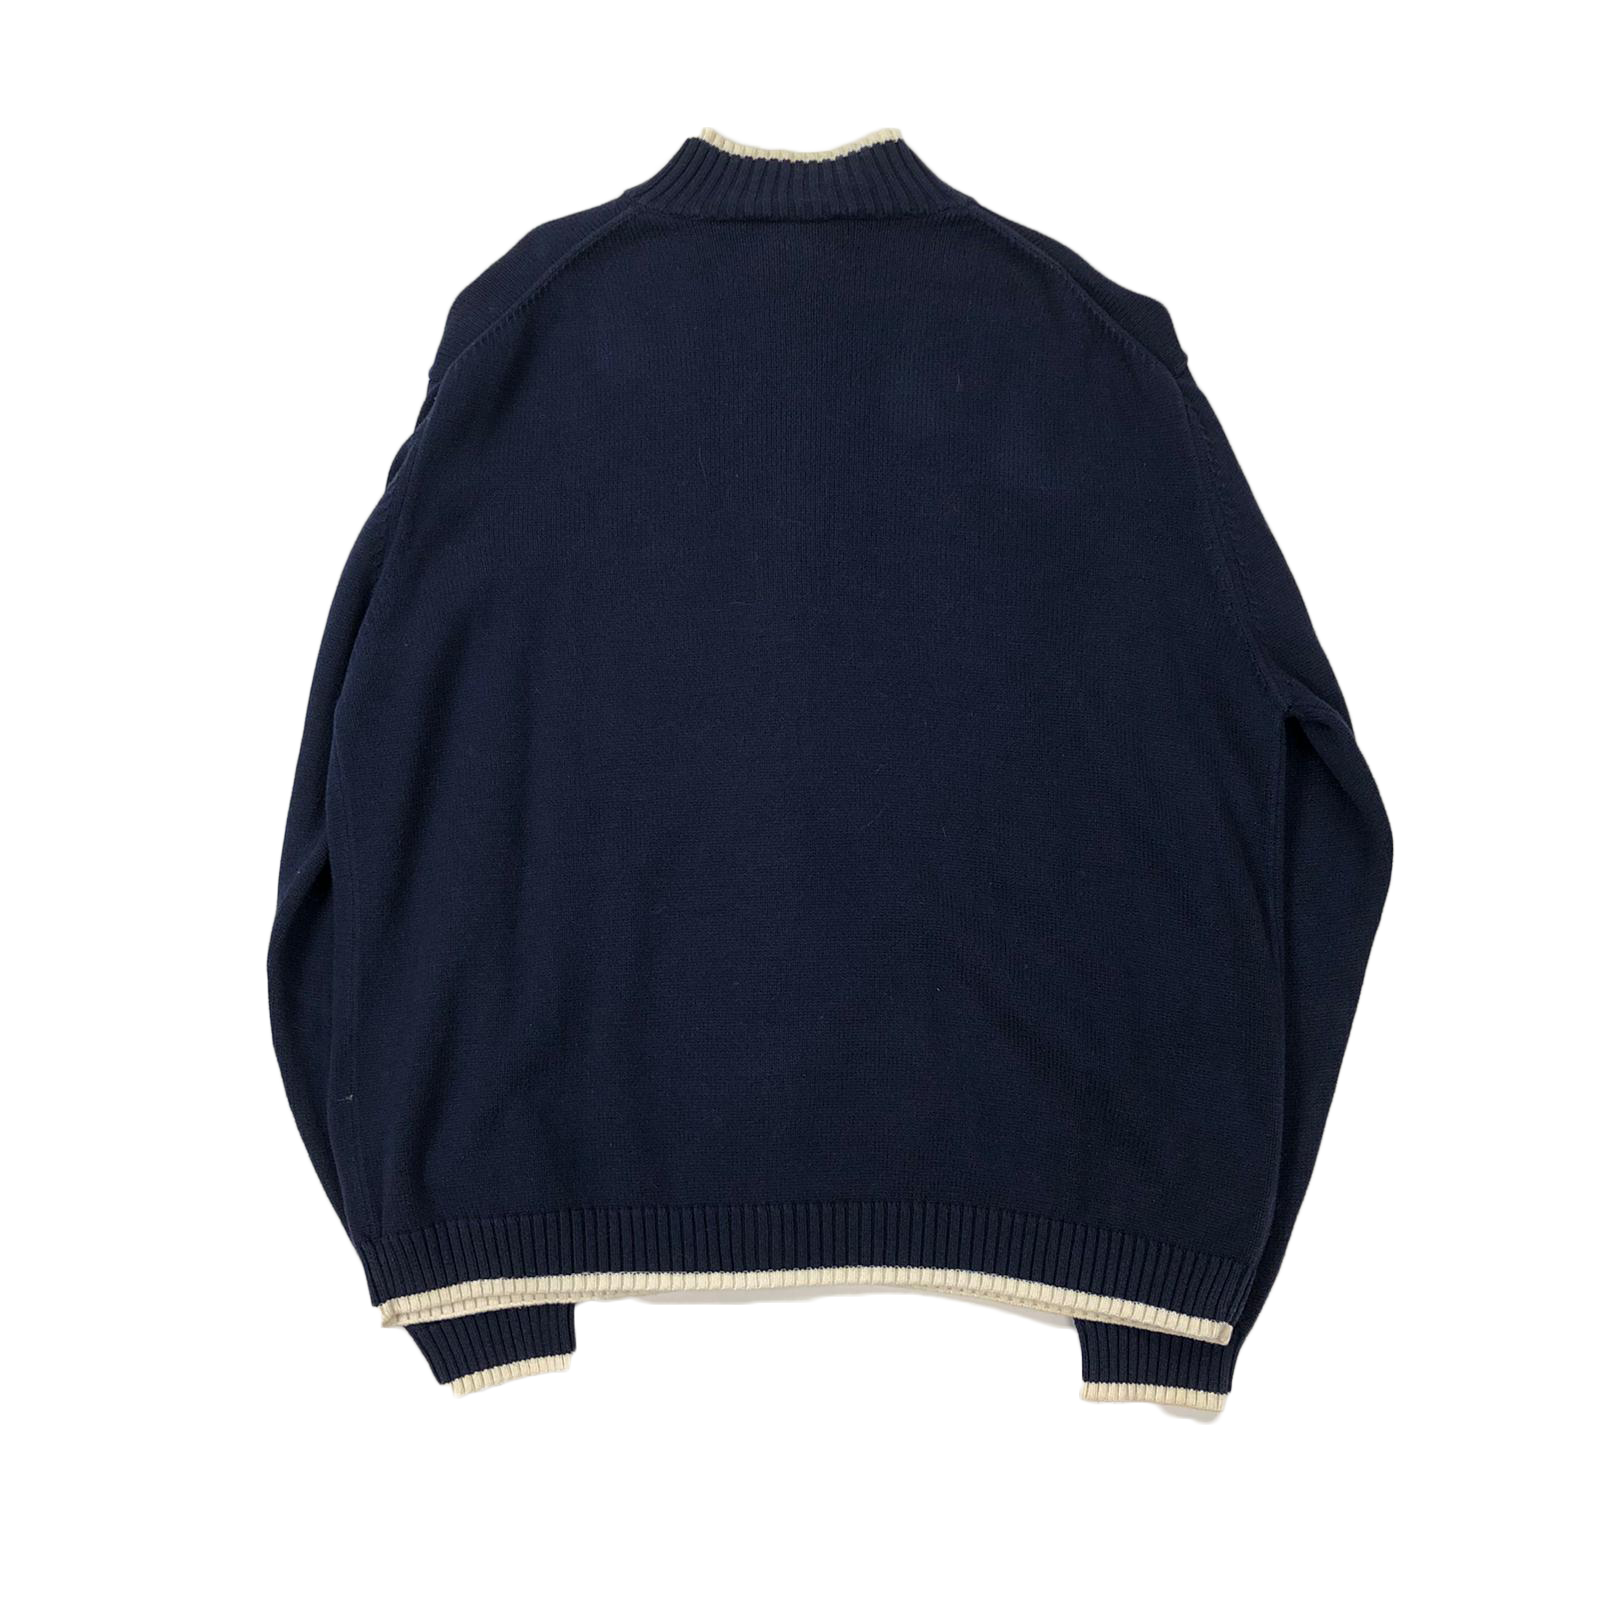 YSL full zip knit sweatshirt